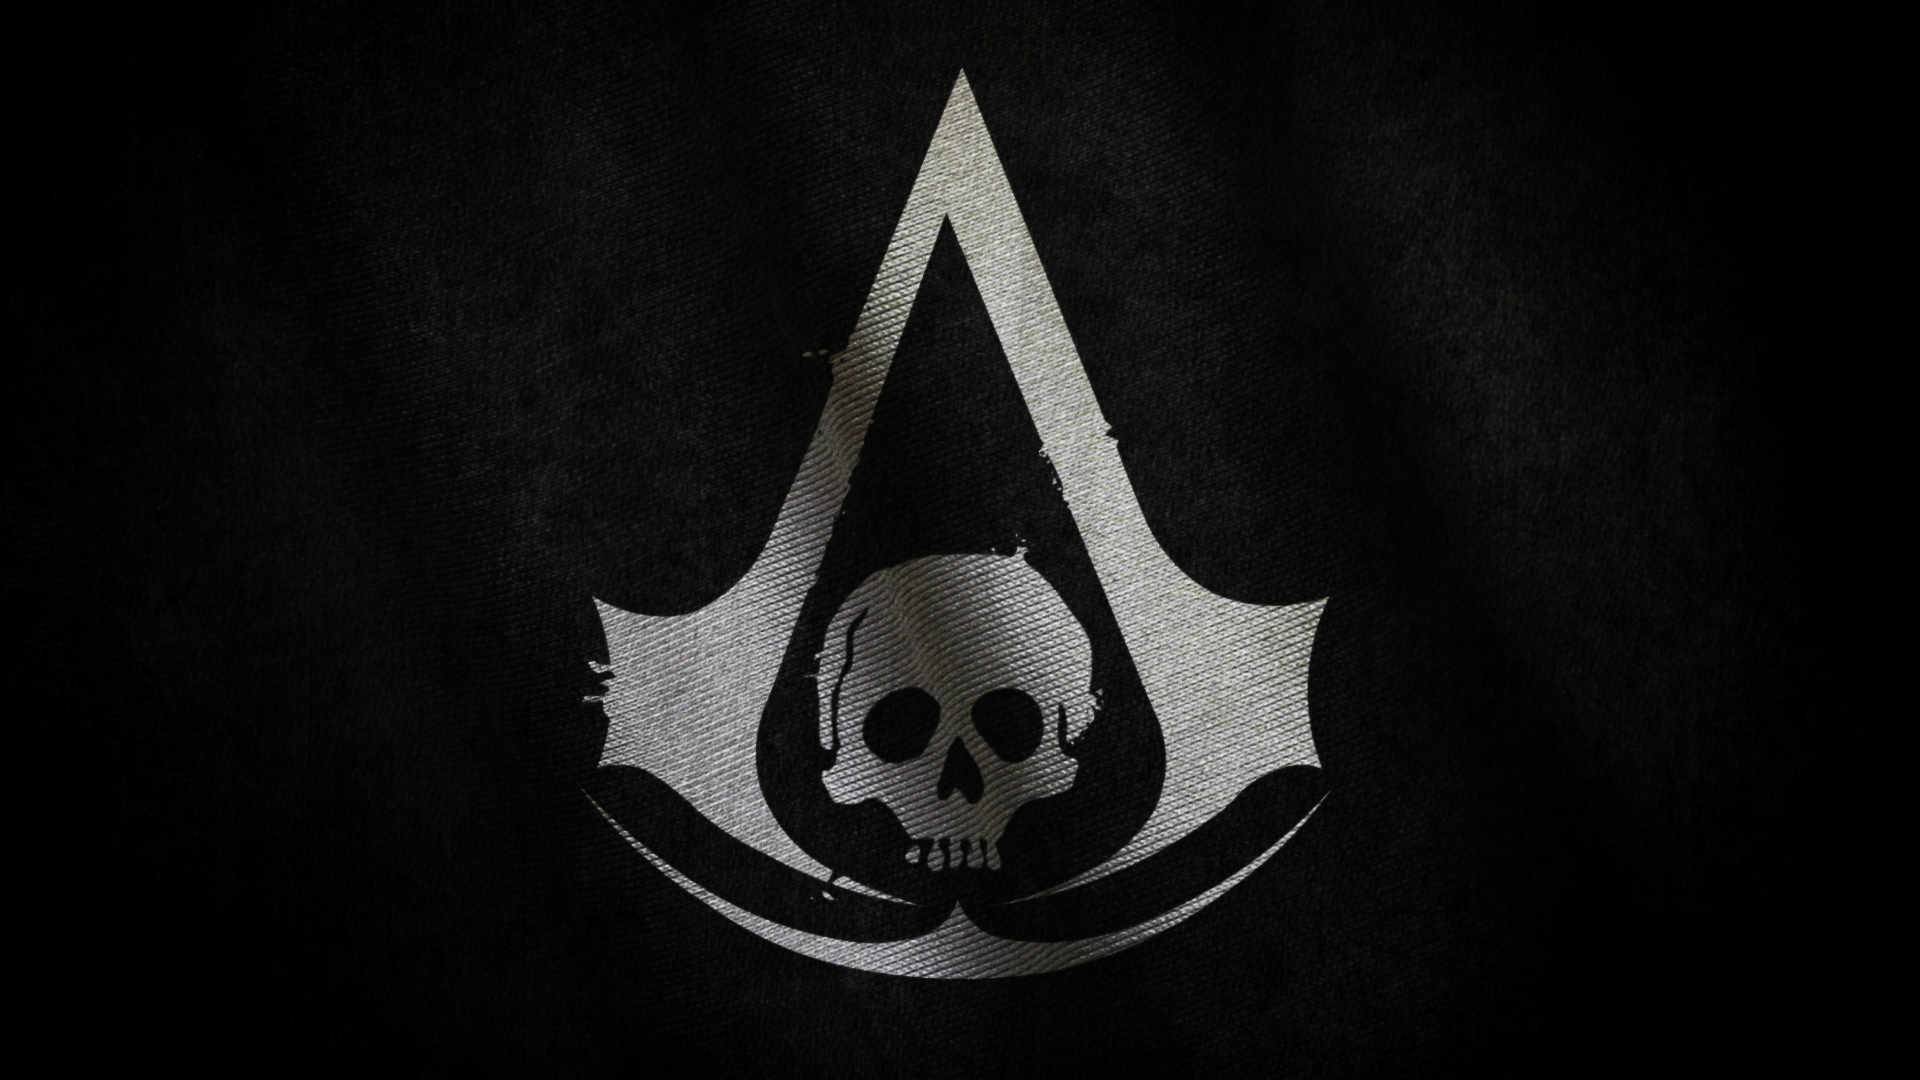 72 Ac4 Black Flag Wallpaper On Wallpapersafari